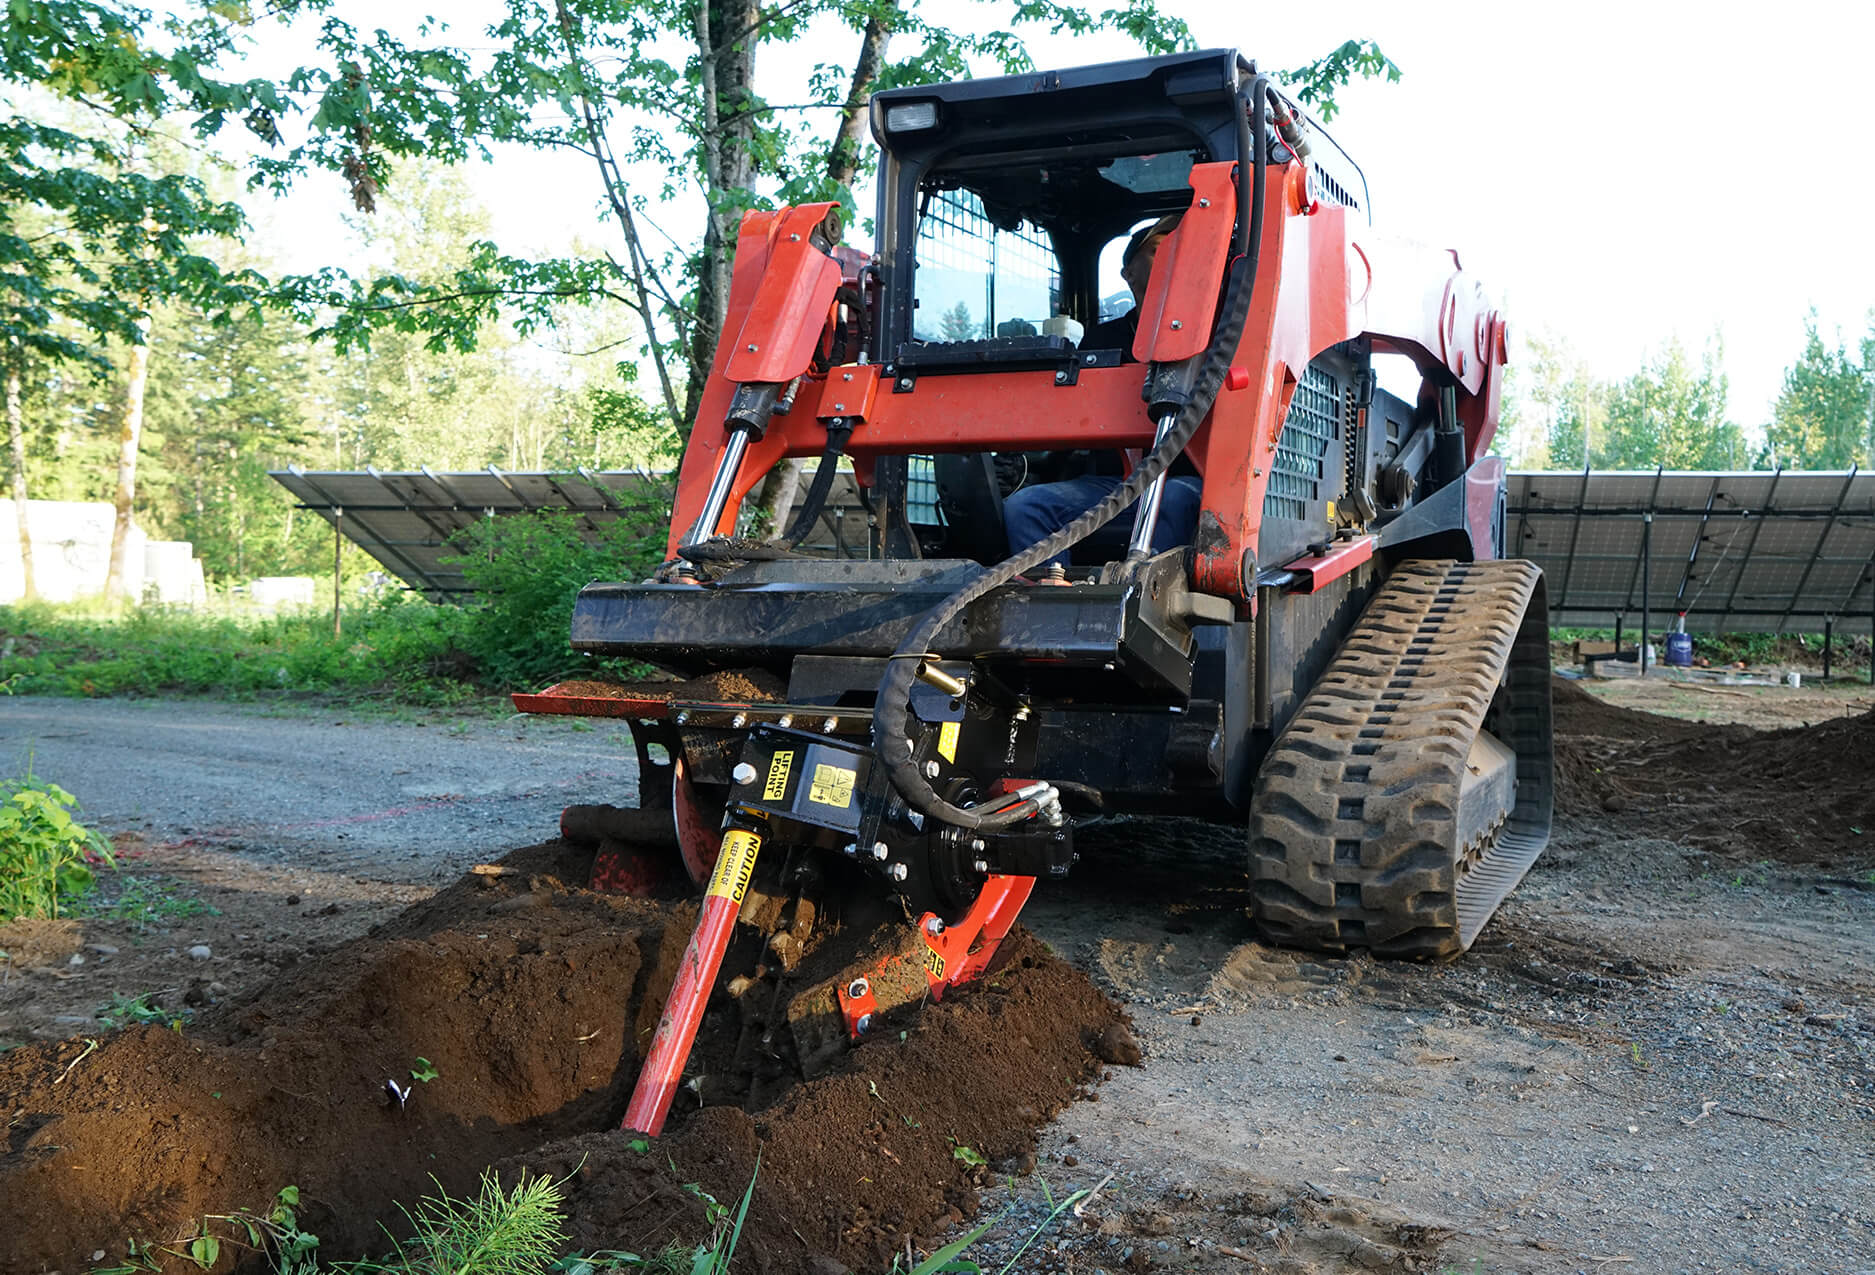 Constructing a water pipeline with the skid steer trencher attachment.